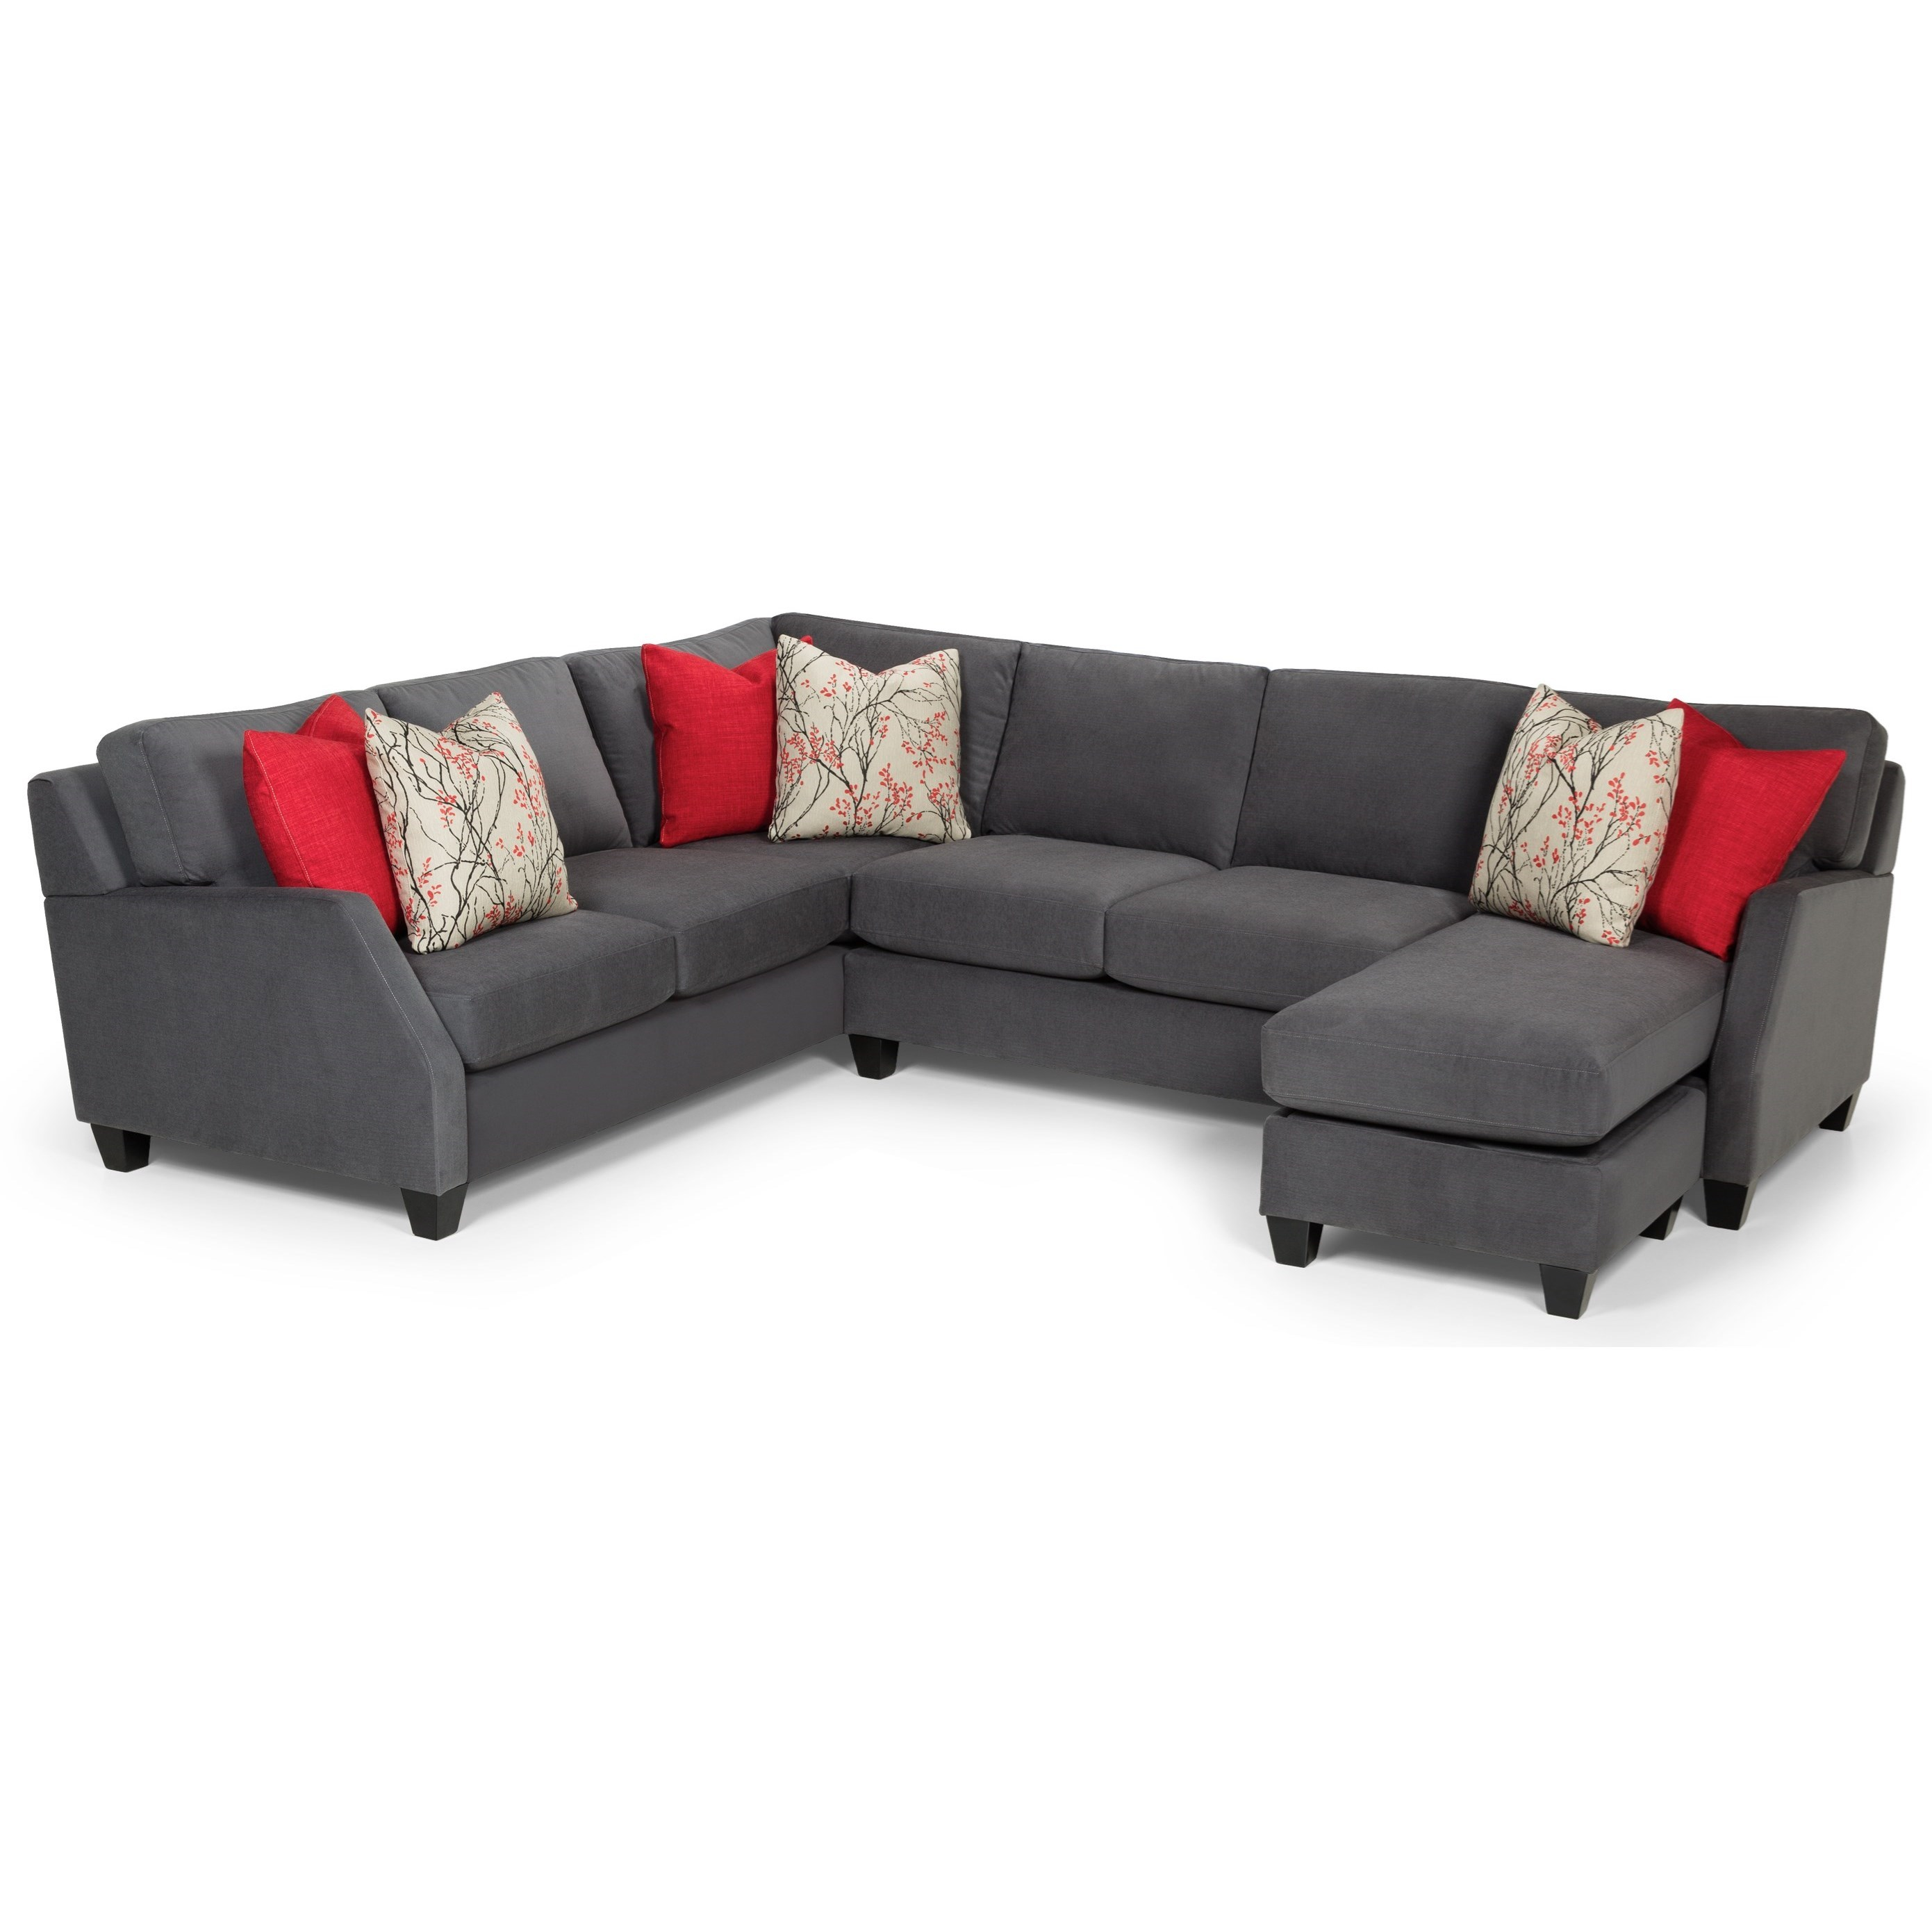 389 3-Piece Sectional by Stanton at Wilson's Furniture